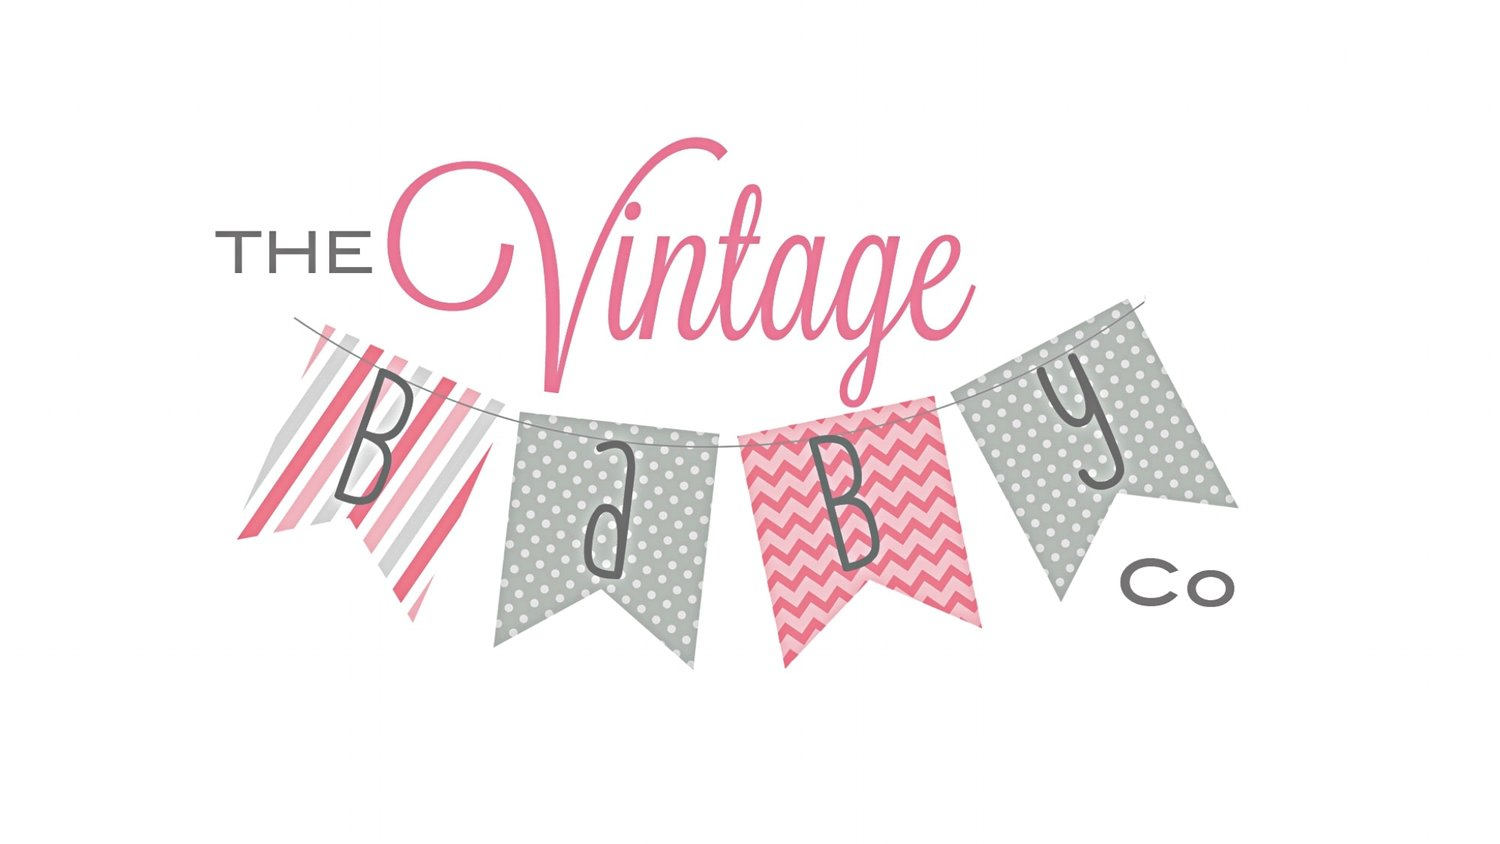 The Vintage Baby Company